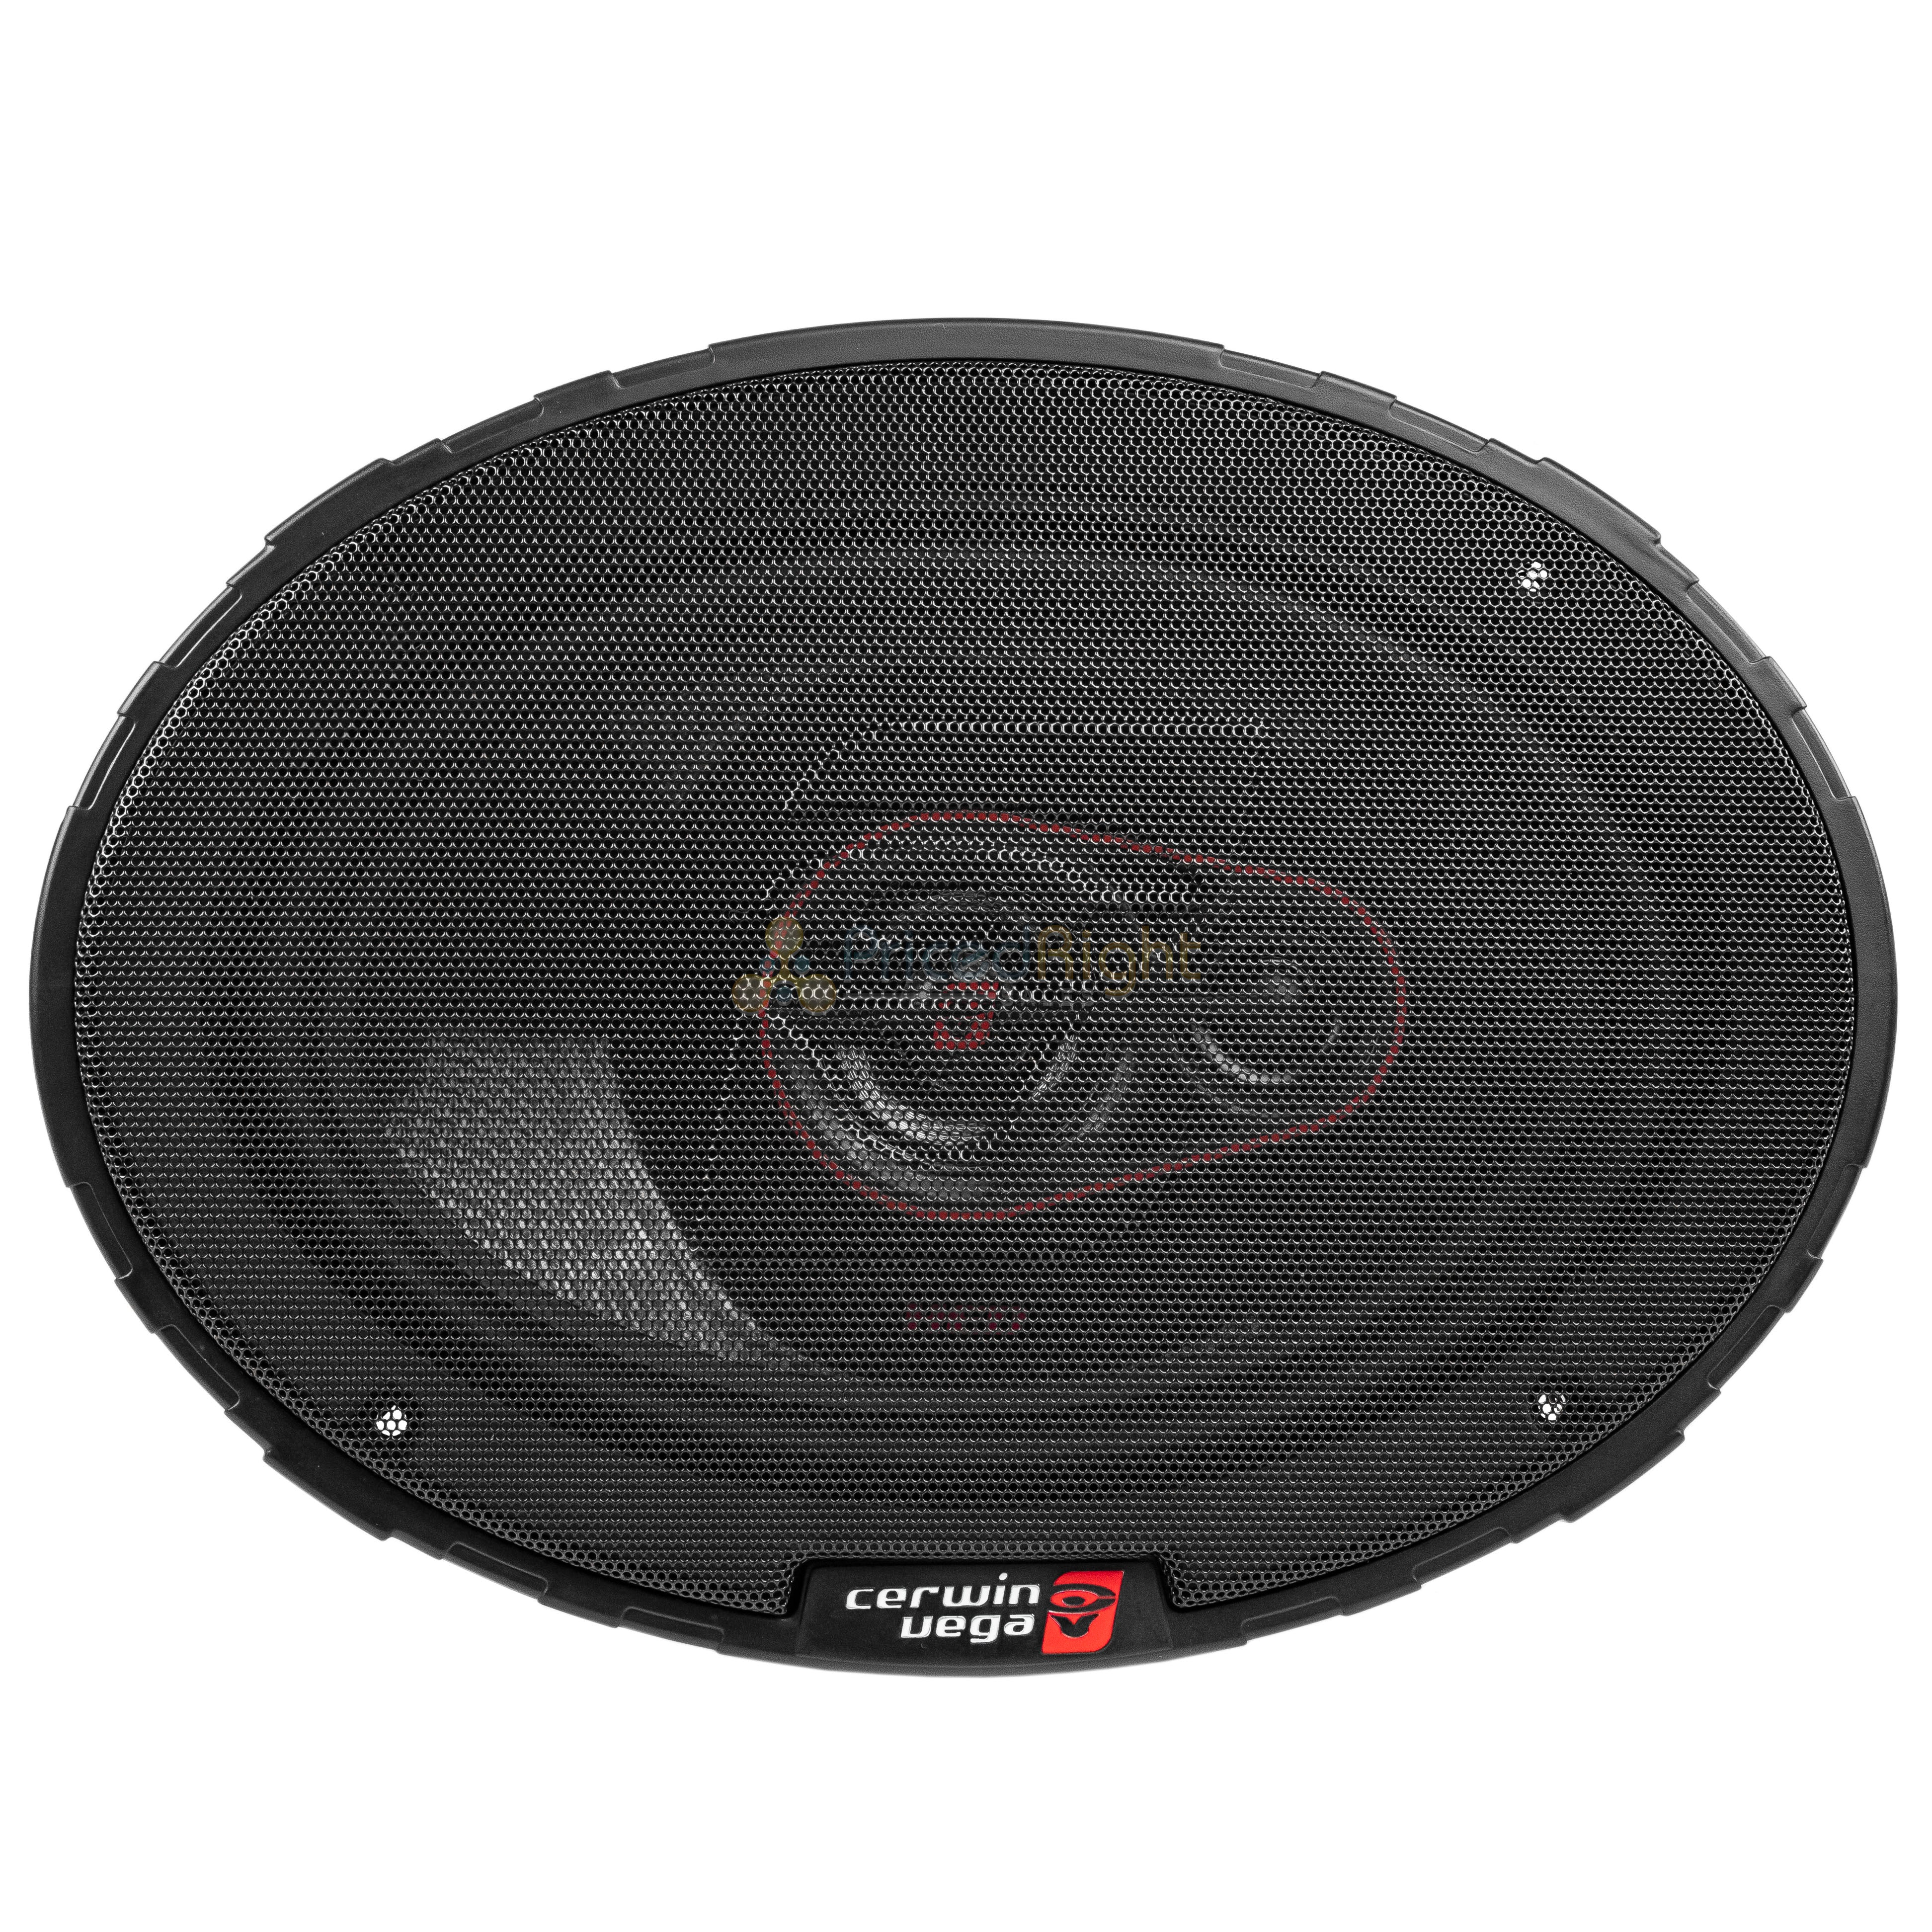 "Cerwin Vega H7693 6"" x 9"" 3 Way Coaxial Car Speakers 4 Ohm 420 Watts Max 4 Pack"